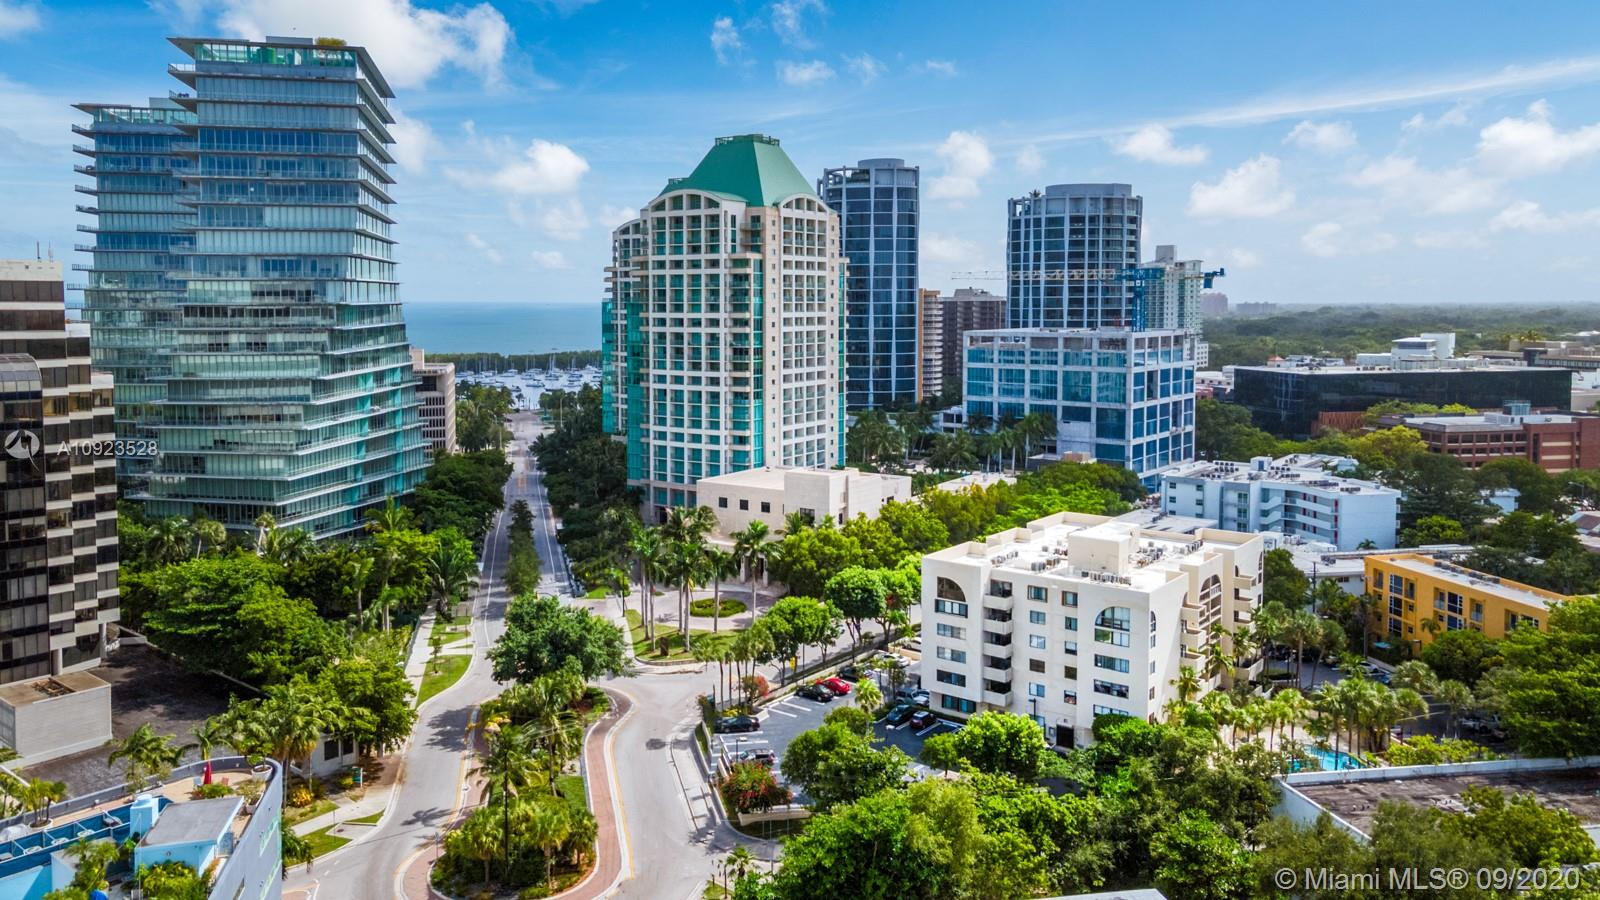 Situated in the most desirable area of Coconut Grove, this 2/1 unit with pool views is move-in ready with stainless steel appliances, private balcony, gated entry and designated parking. Enjoy living in the heart of Coconut Grove, walking distance to all the best shops, restaurants, marinas and parks.